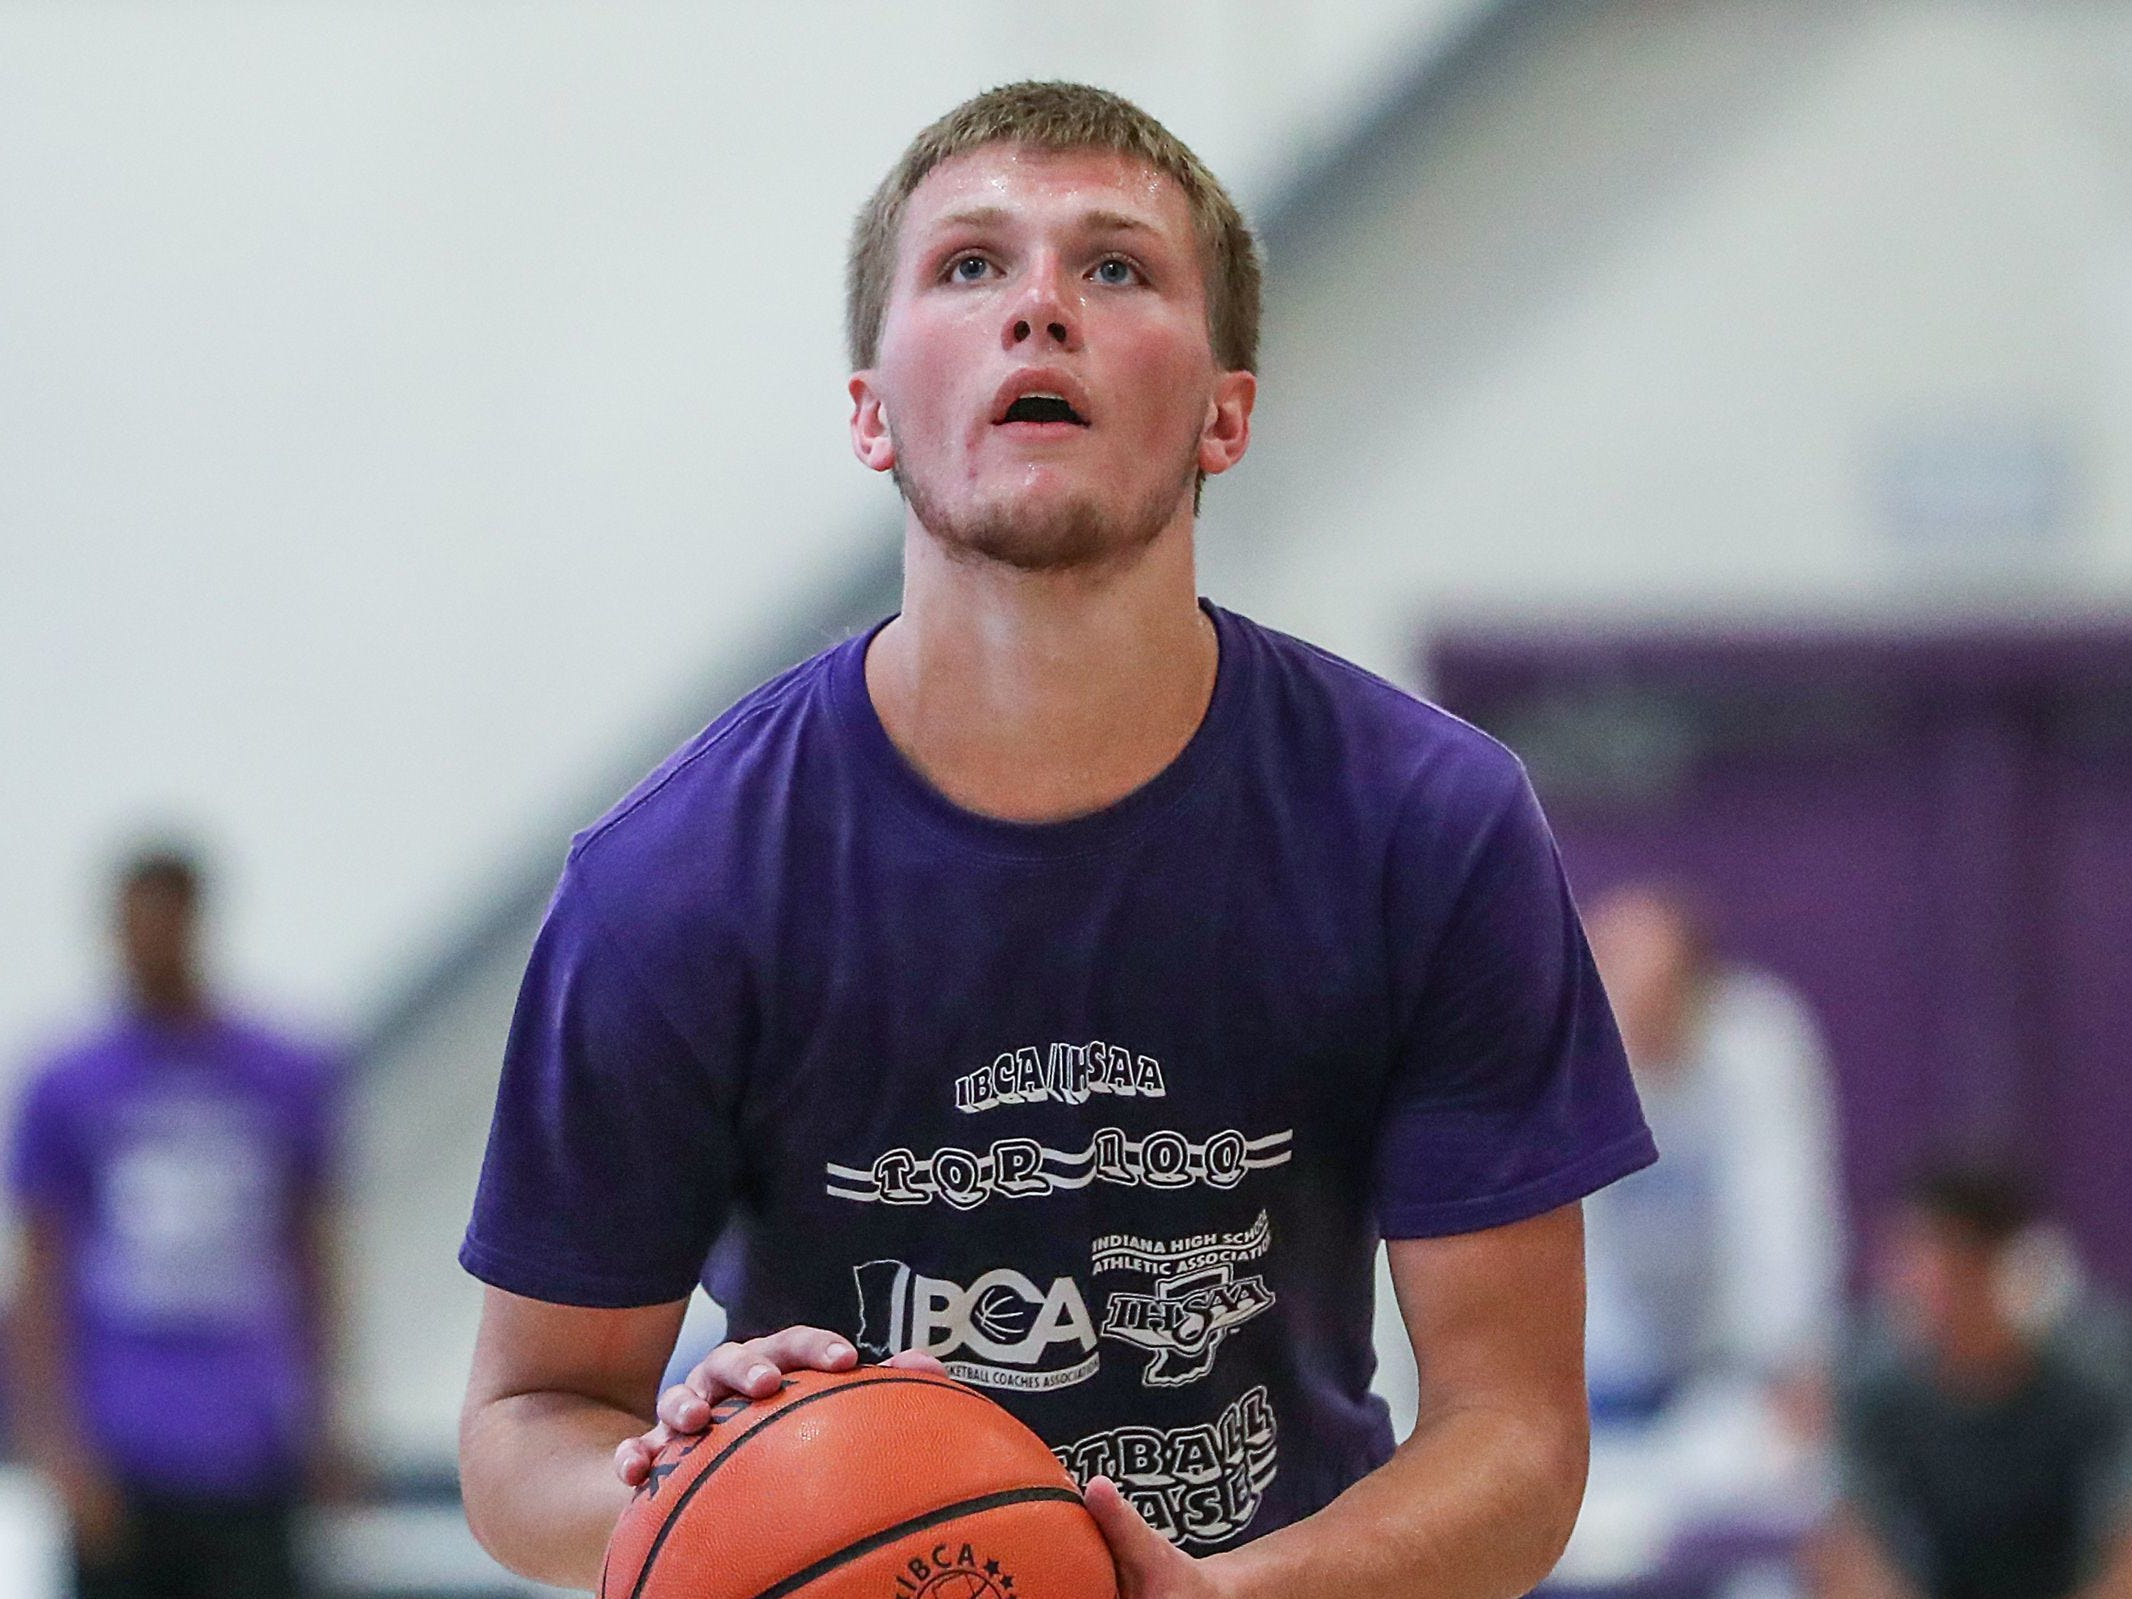 Bedford North Lawrence's Brayton Bailey dunks during the 16th annual IBCA/IHSAA Underclass Boys Showcase at Ben Davis High School in Indianapolis, Monday, July 9, 2018.